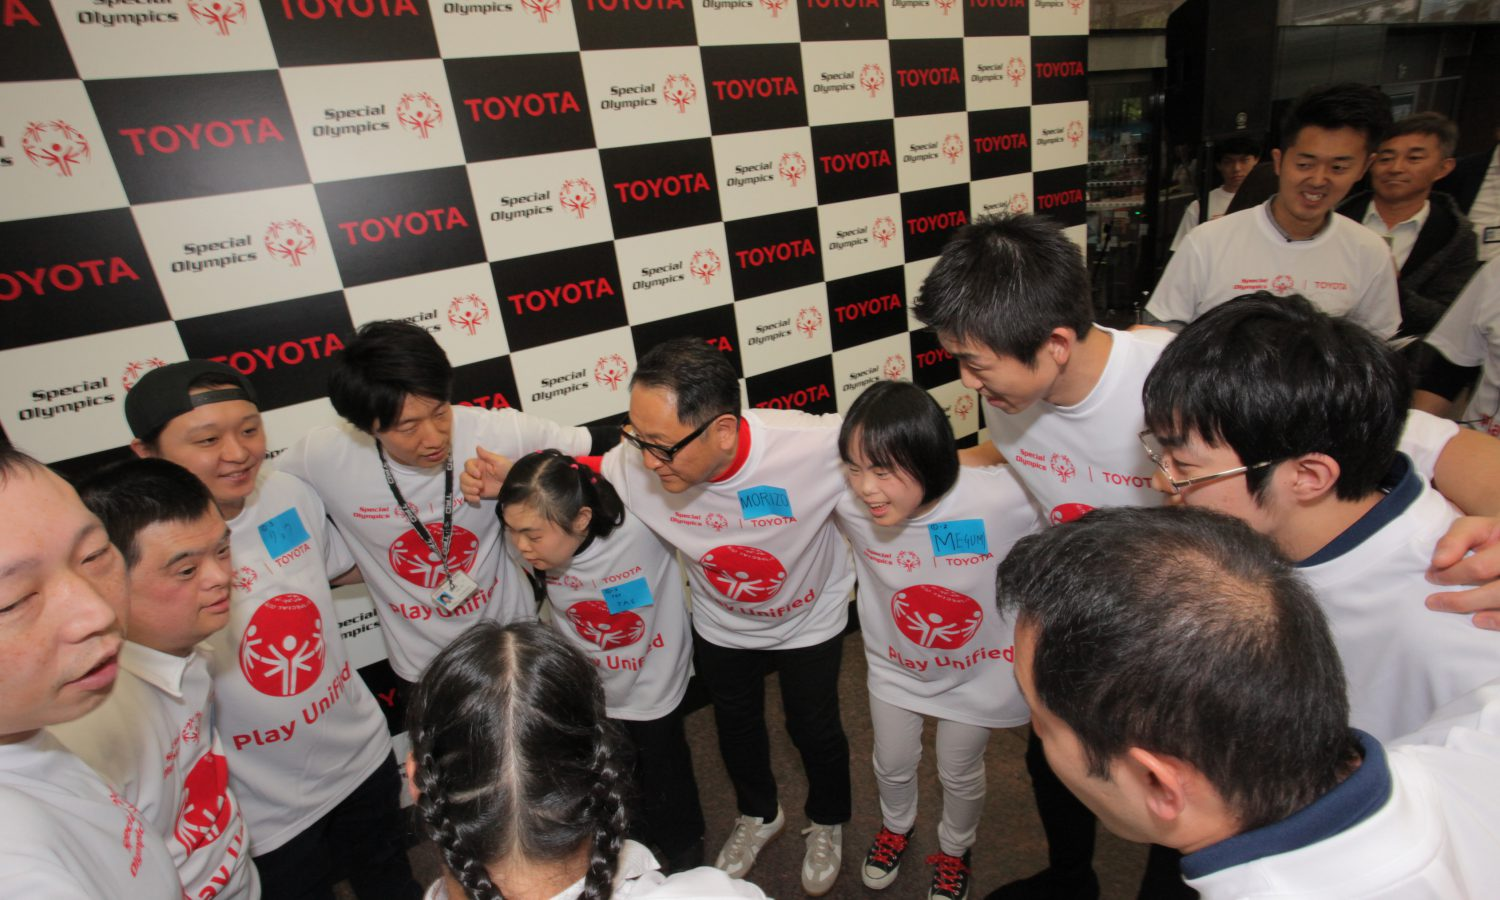 Toyota Celebrates Teamwork and Inclusivity at the Special Olympics Unified Cup